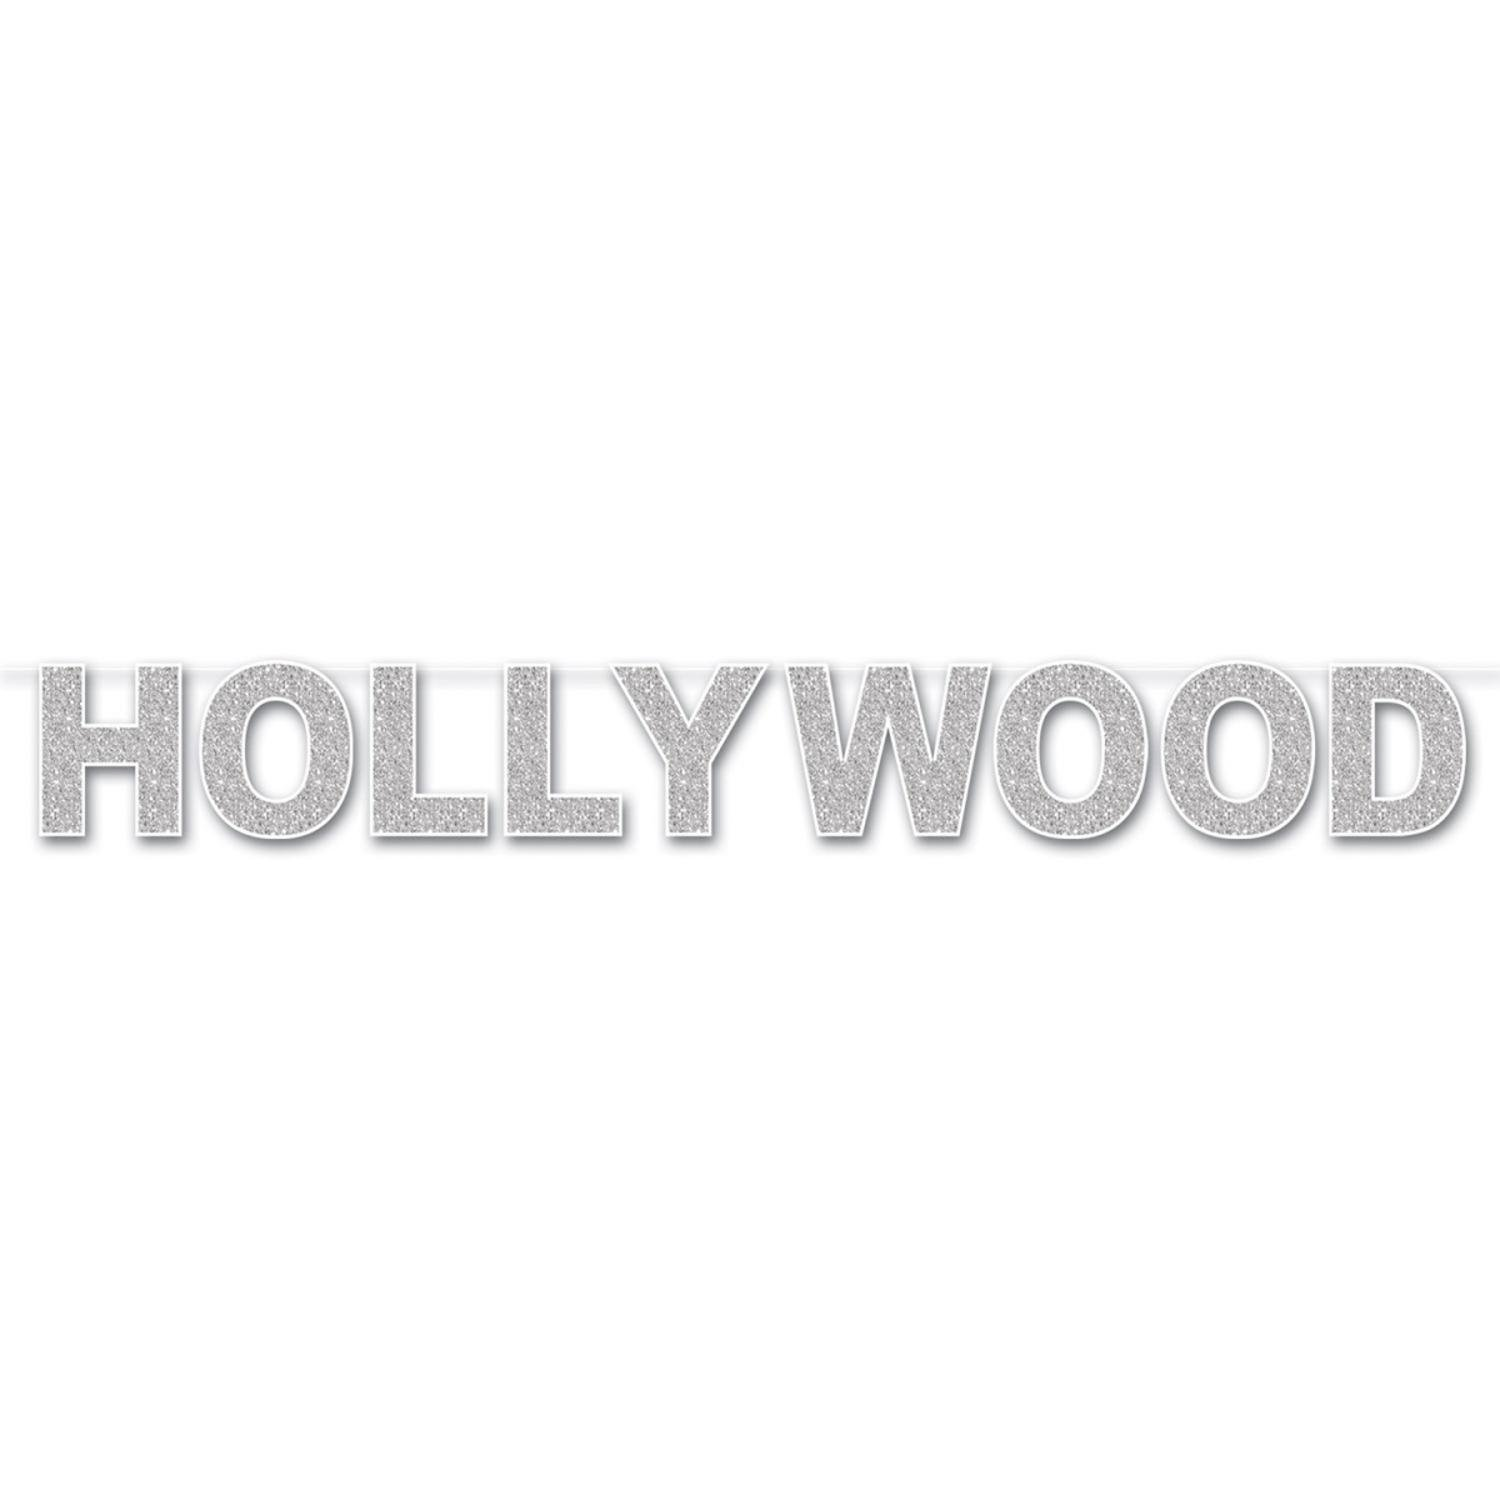 Pack of 12 Silver Glittered Awards Themed ''Hollywood'' Jointed Decorative Streamers 8.5'' x 8'